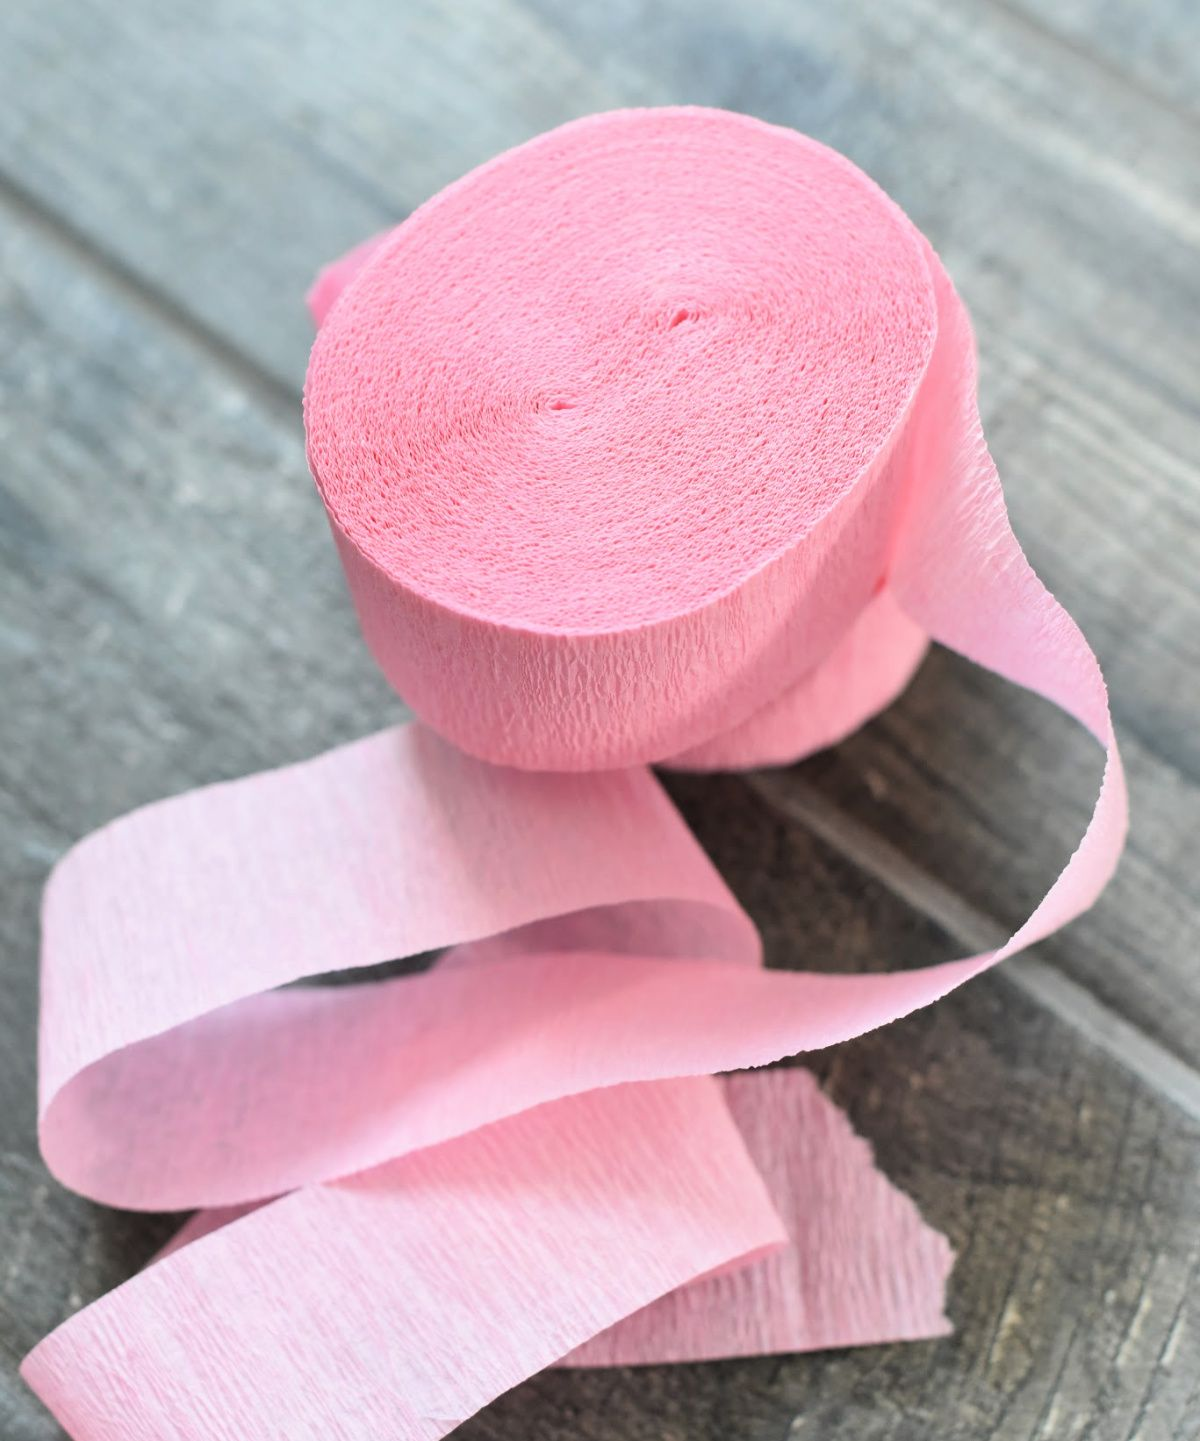 on a grey background is a roll of pink tissue paper, unravelling